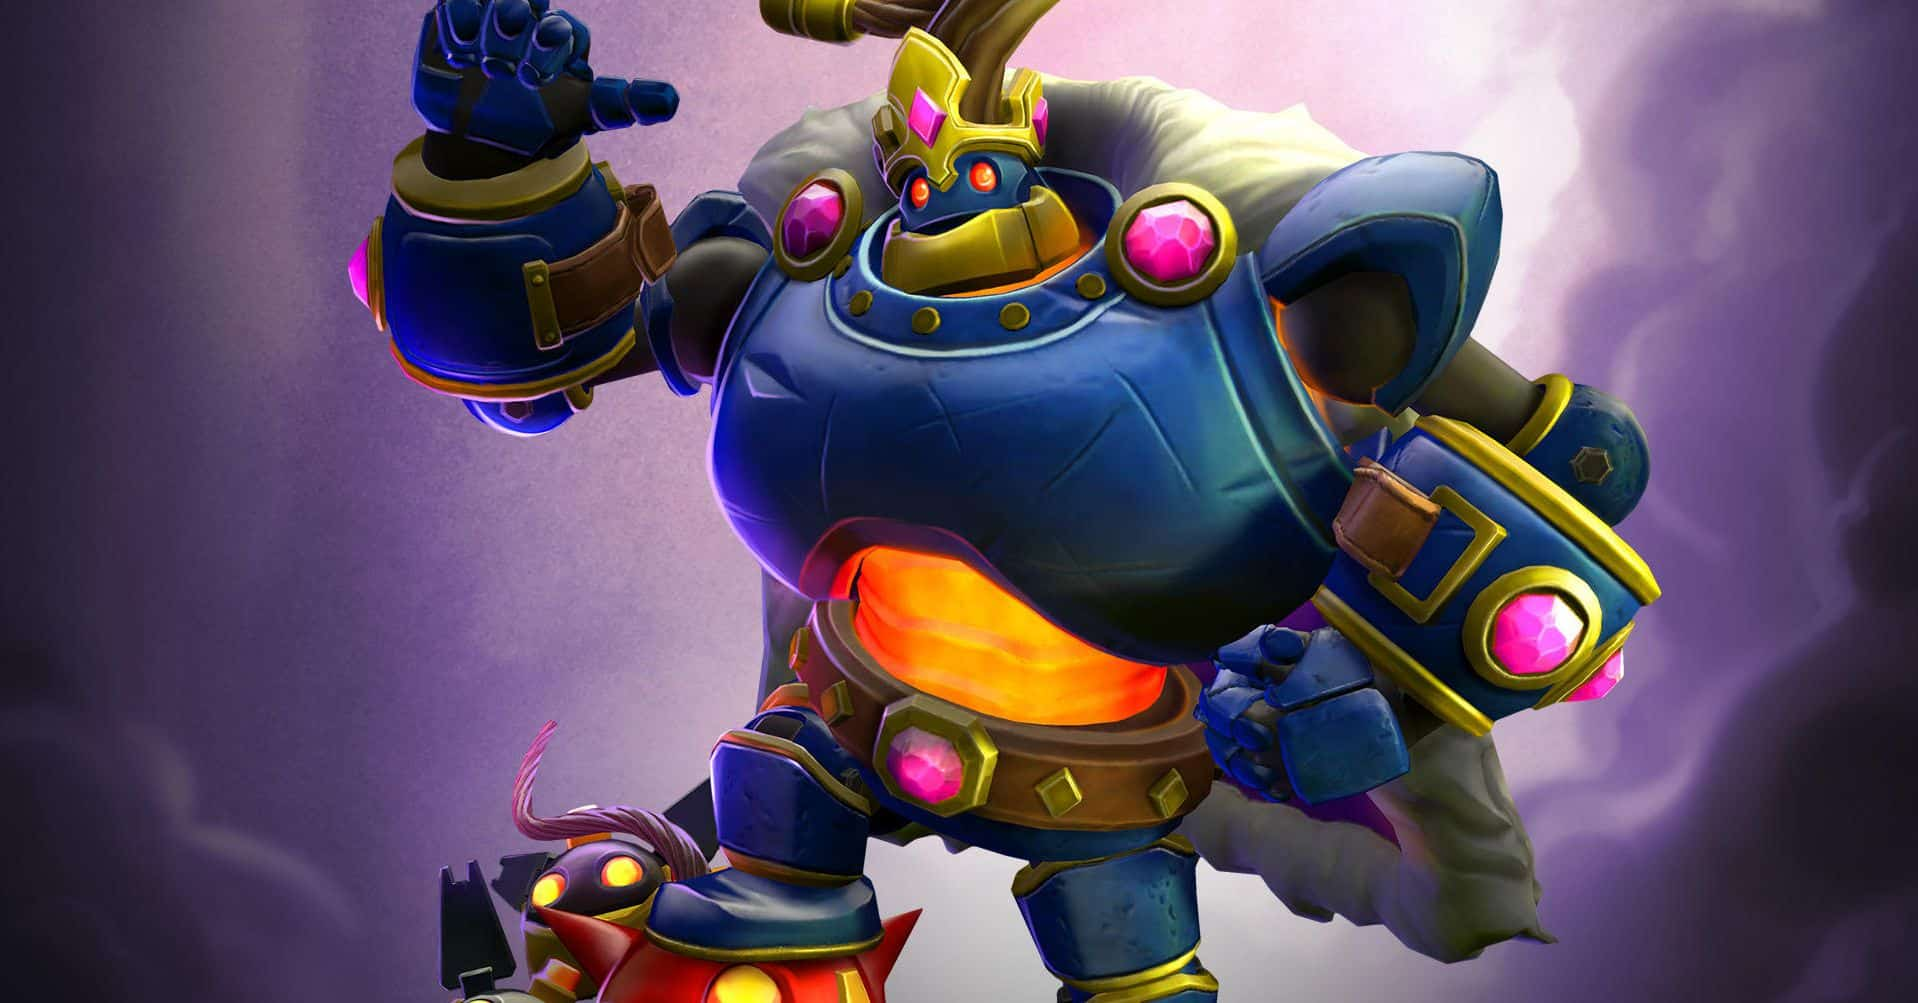 Bomb King - His Majesty, Default Skin, Paladins